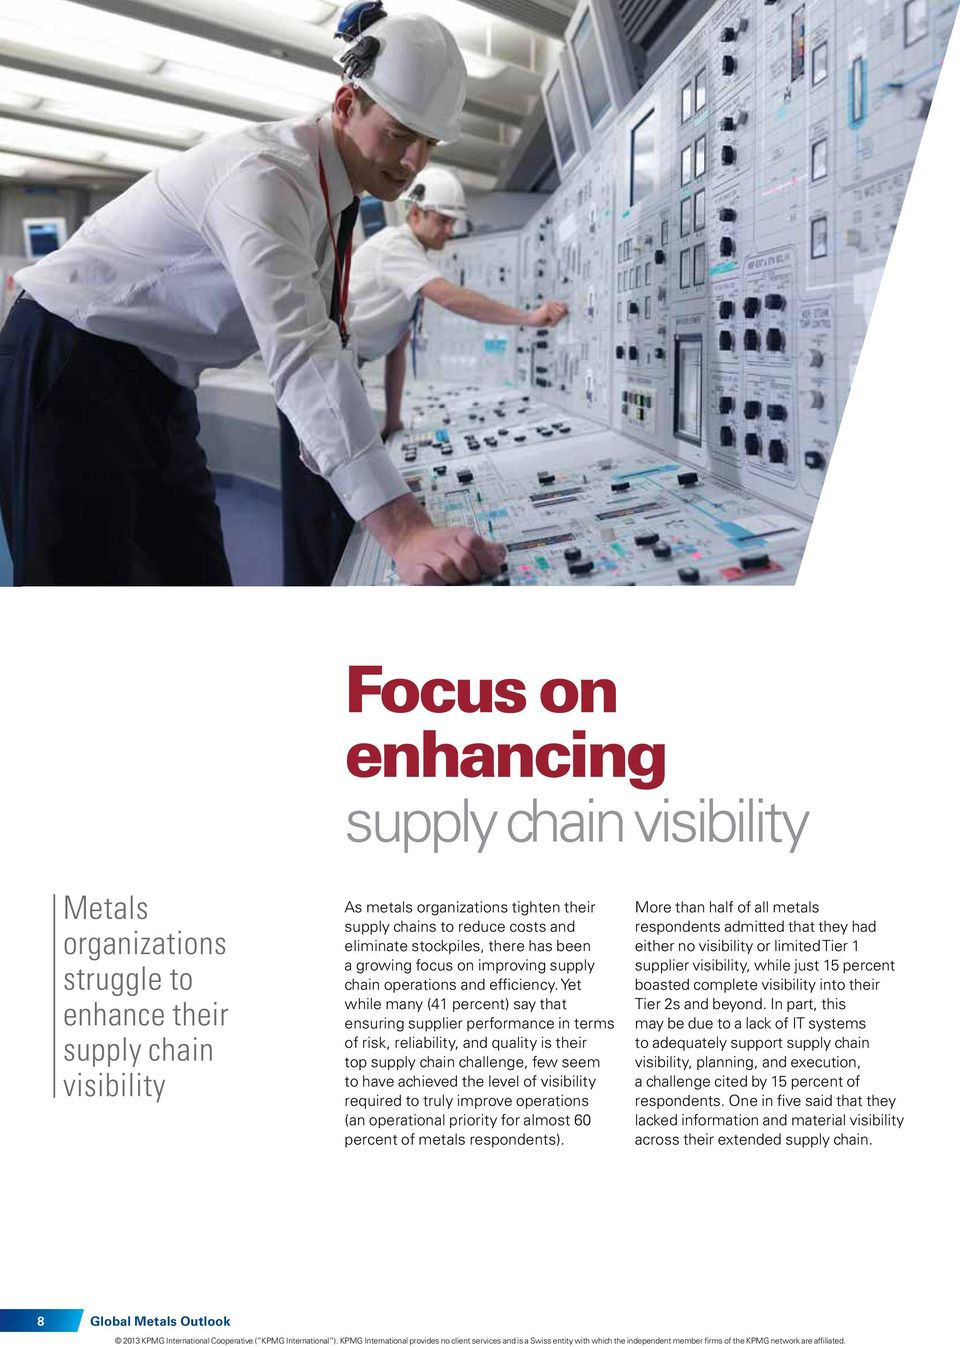 Yet while many (41 percent) say that ensuring supplier performance in terms of risk, reliability, and quality is their top supply chain challenge, few seem to have achieved the level of visibility